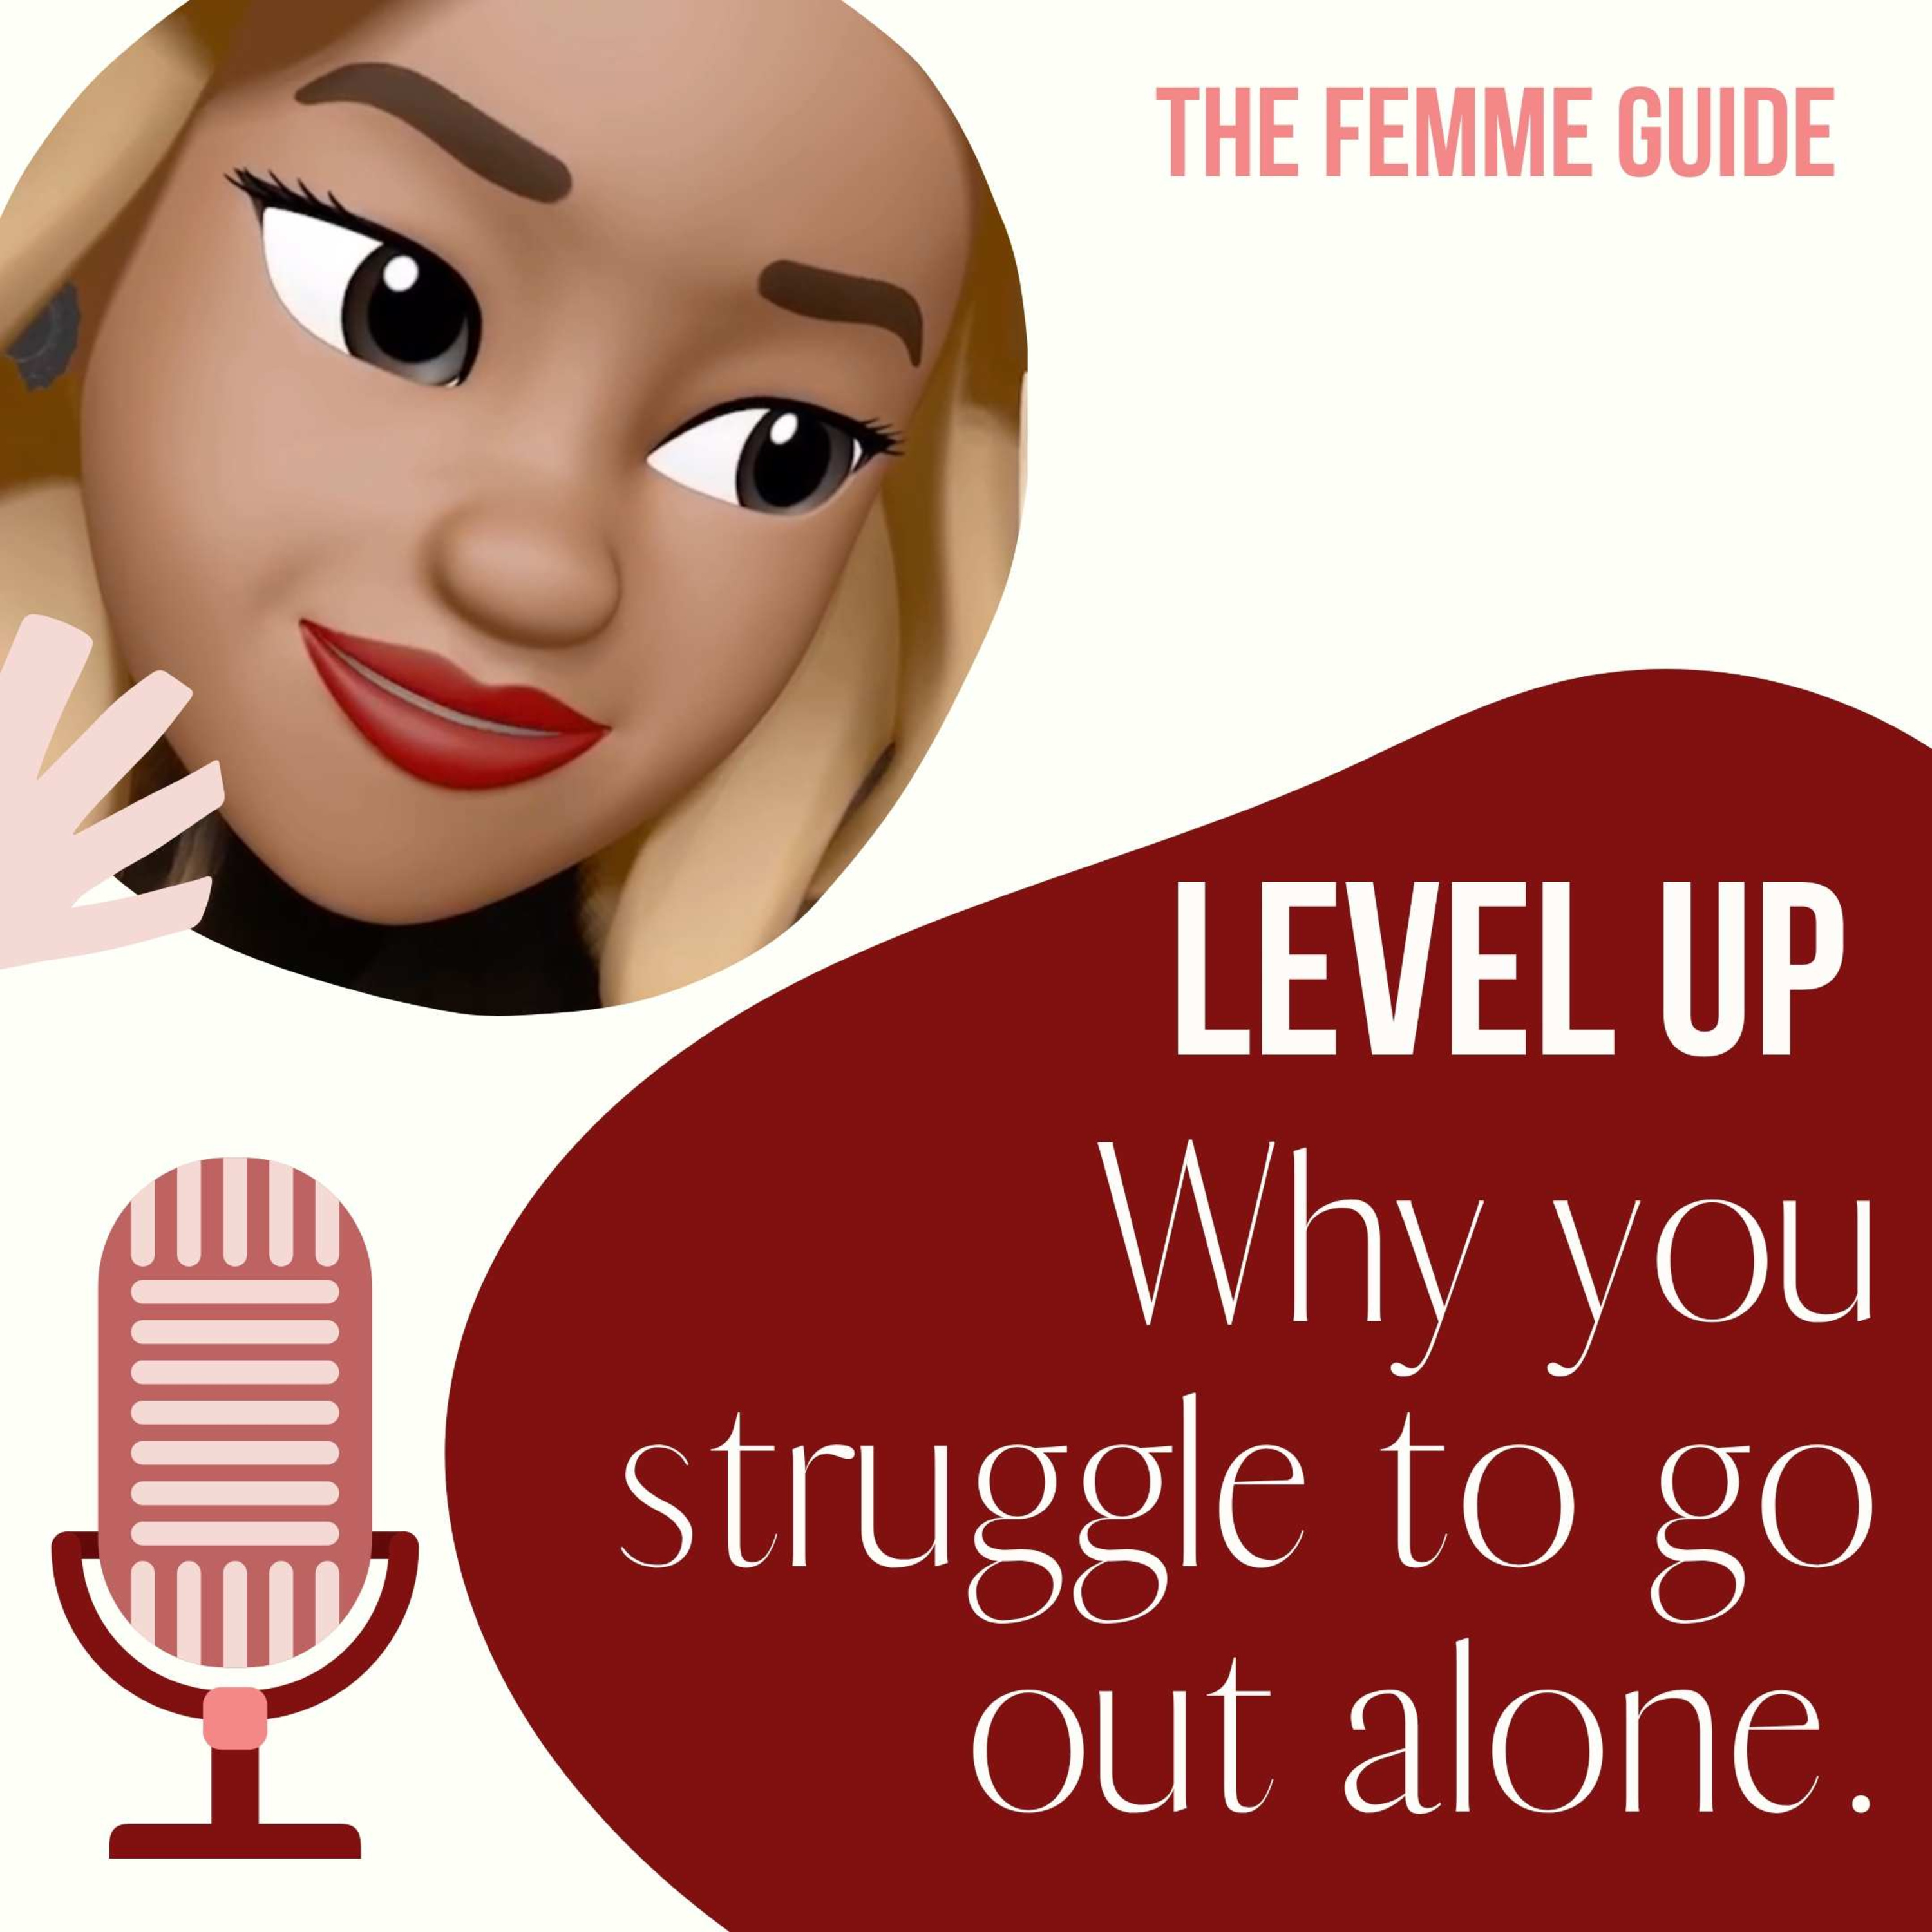 The Femme Guide